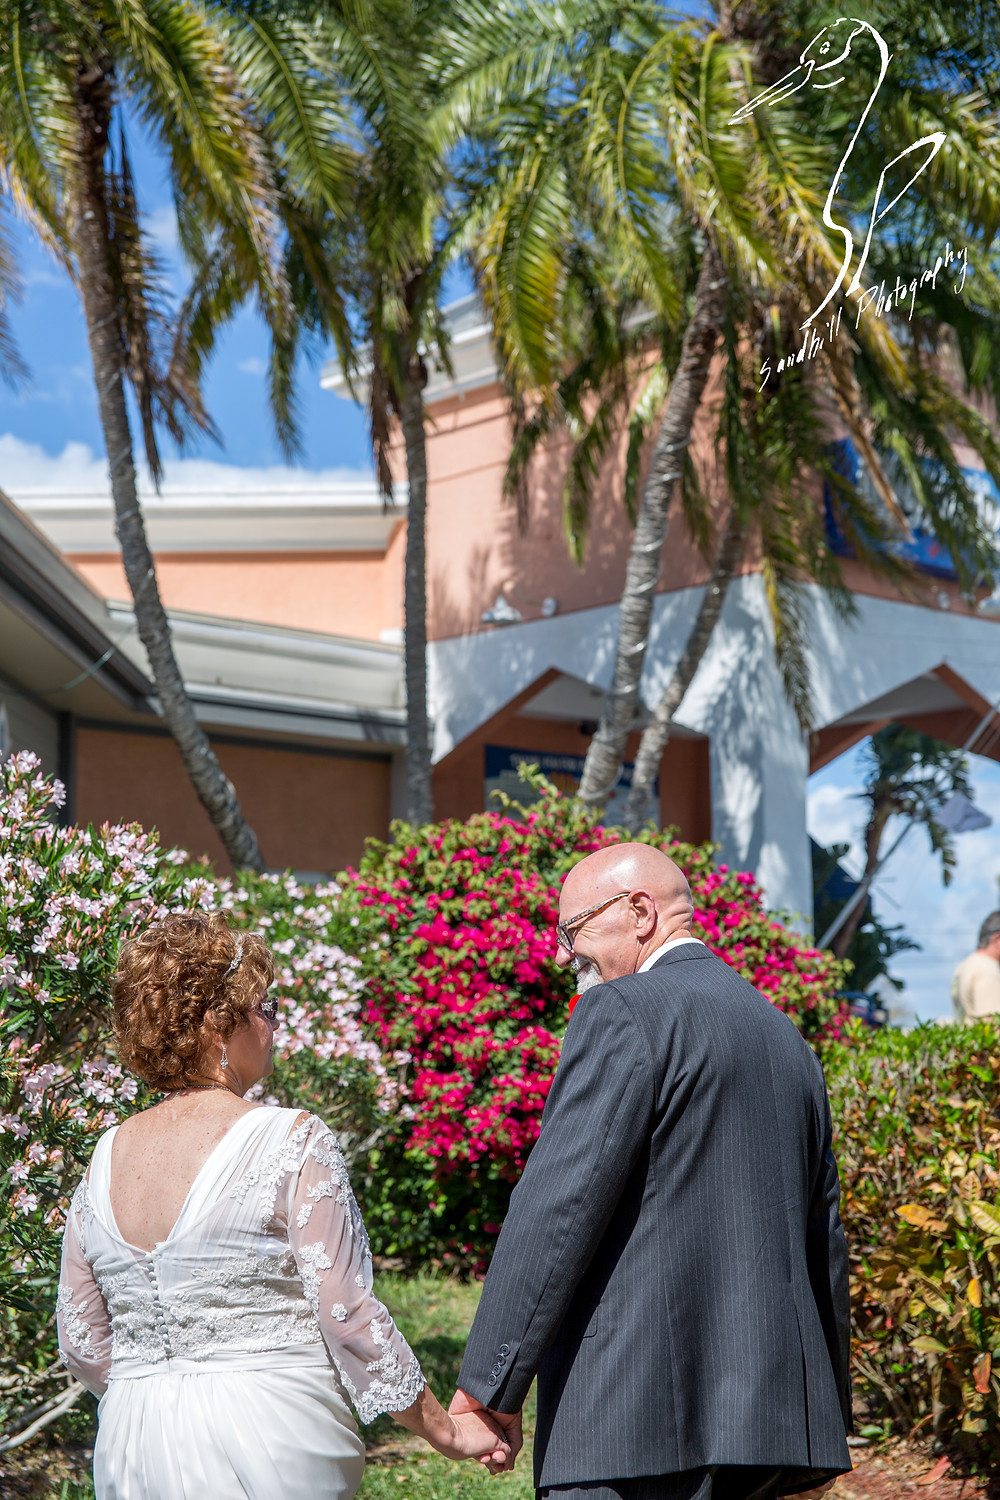 Anna Maria Oyster Bar Wedding Photography Bride Groom  Palm Trees pink flowers walking outside sunny